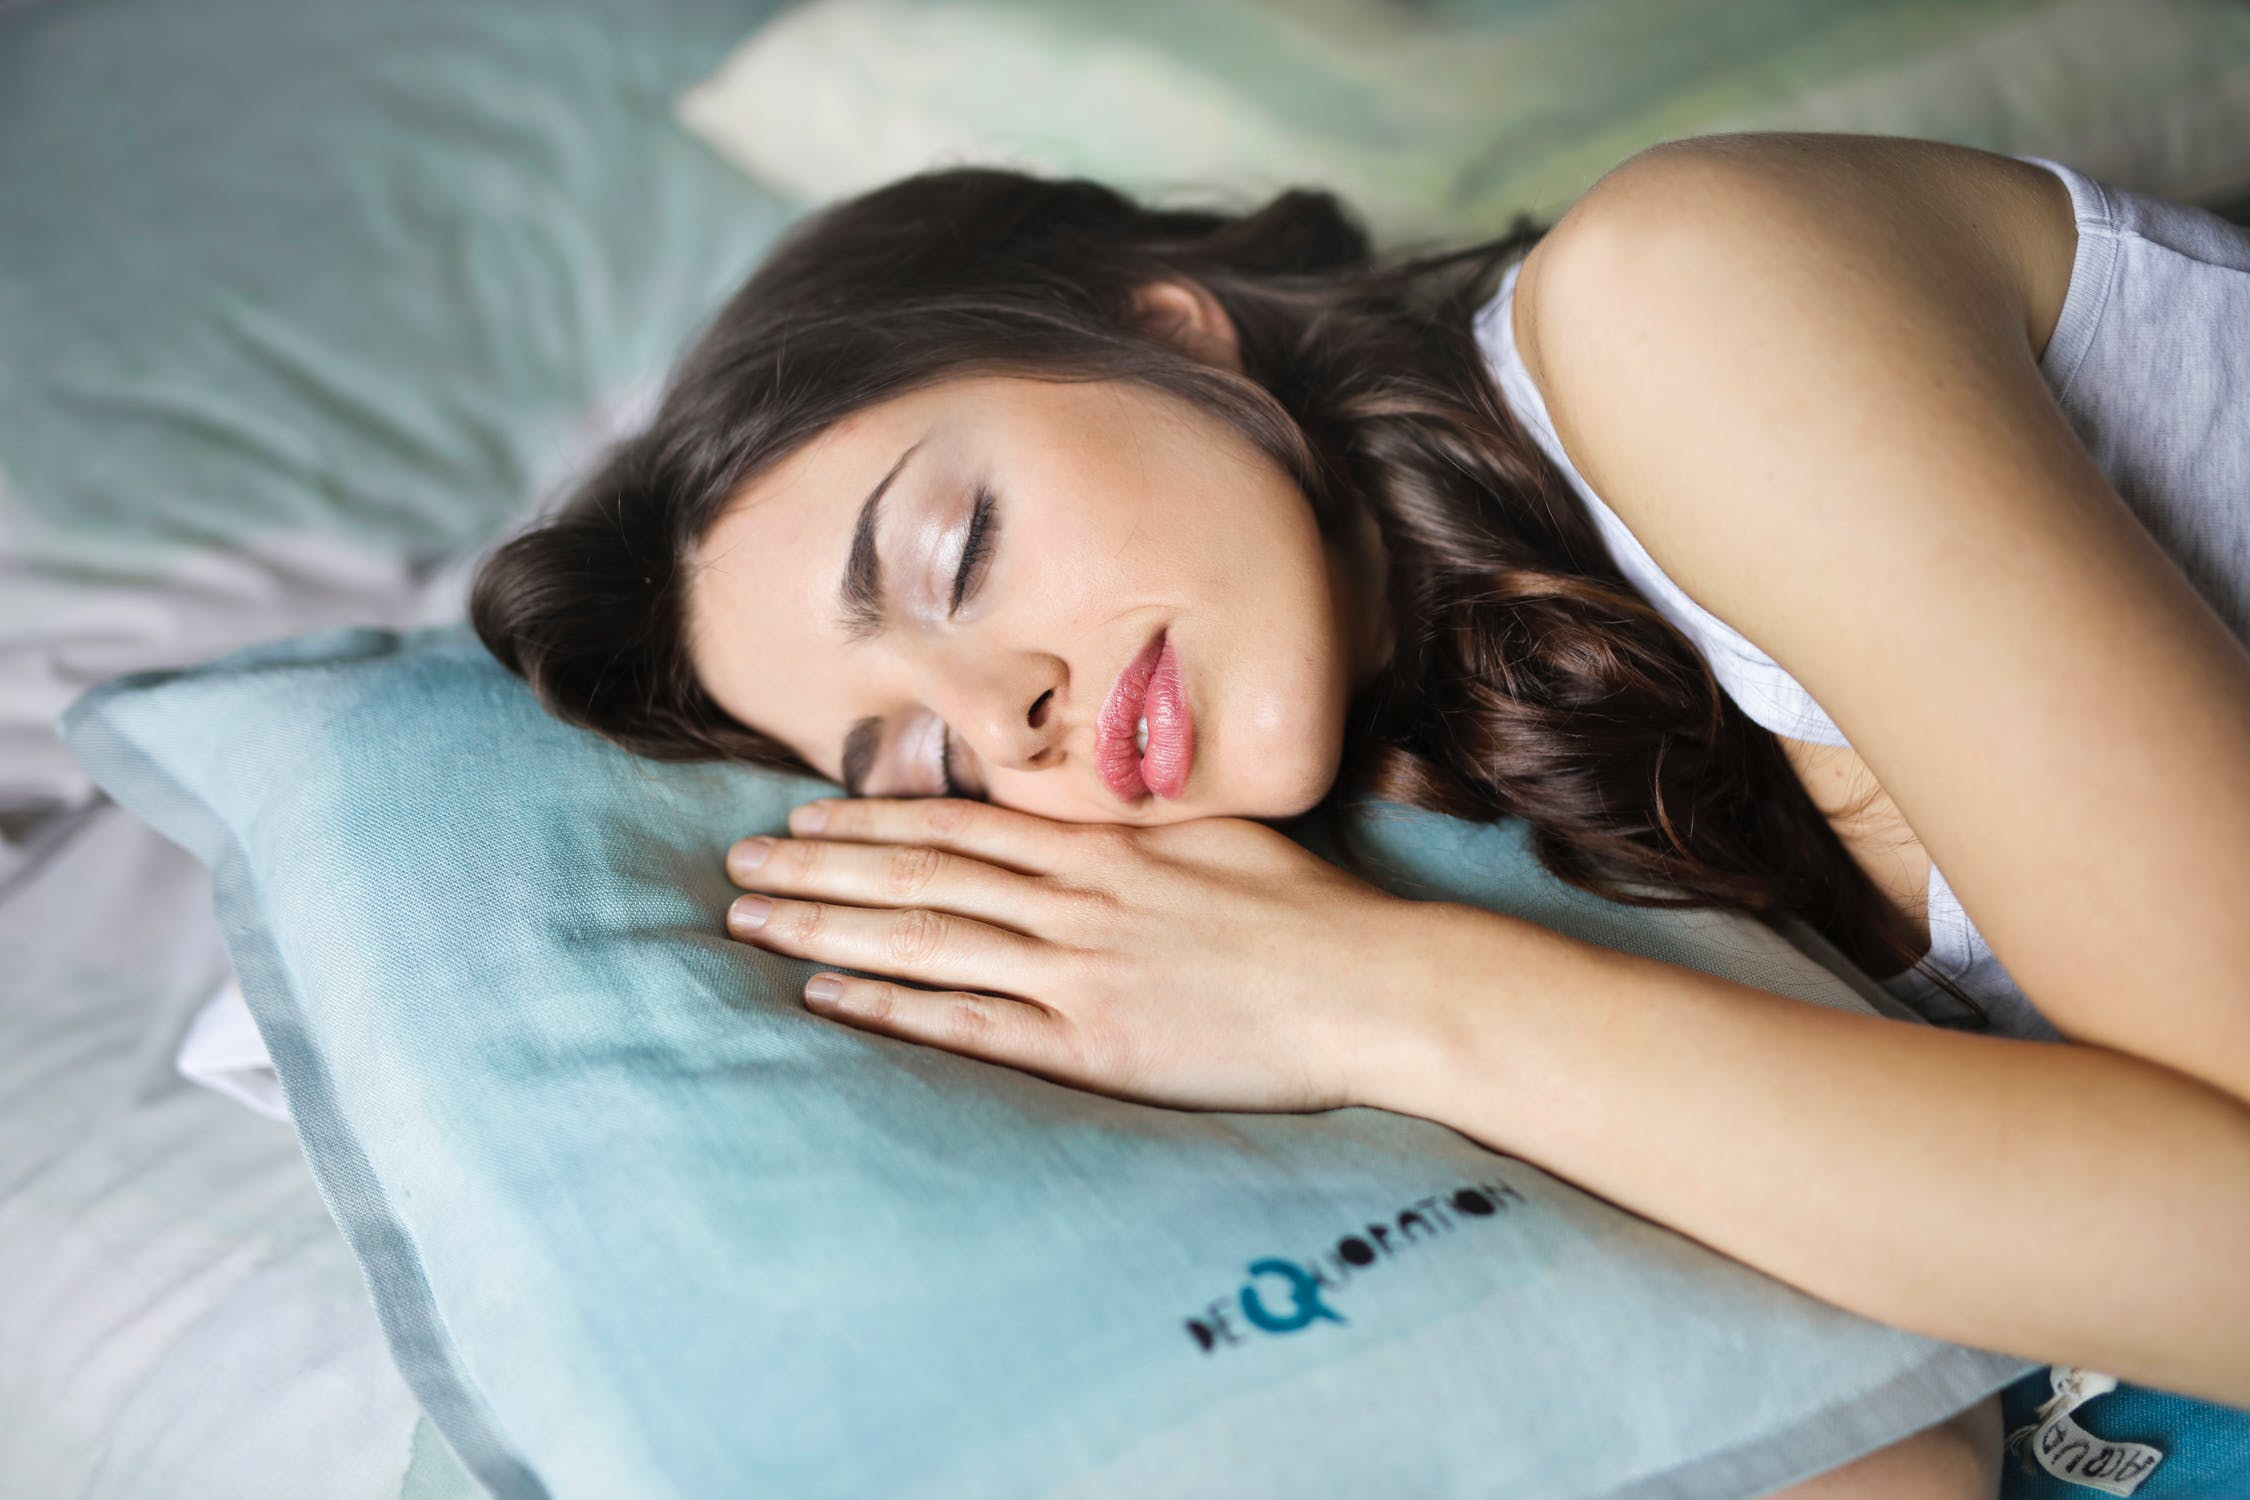 10 Things to Do When You Can't Fall Asleep